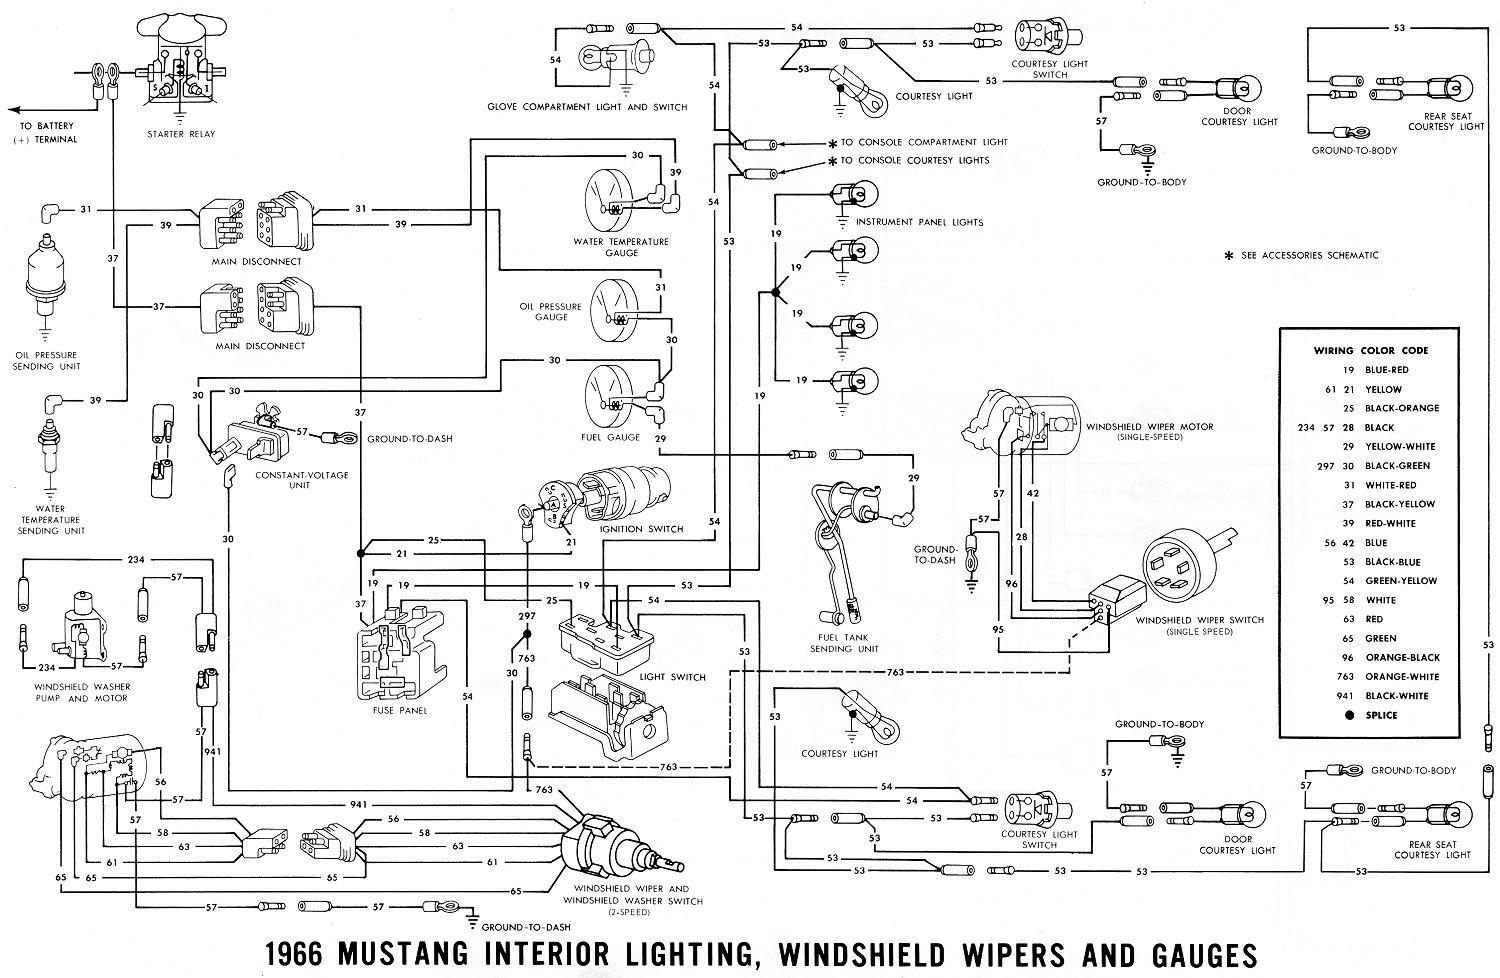 66 Mustang Wiring Schematic Opinions About Diagram 1967 Camaro Convertible Lelu S 1966 Diagrams Circuit